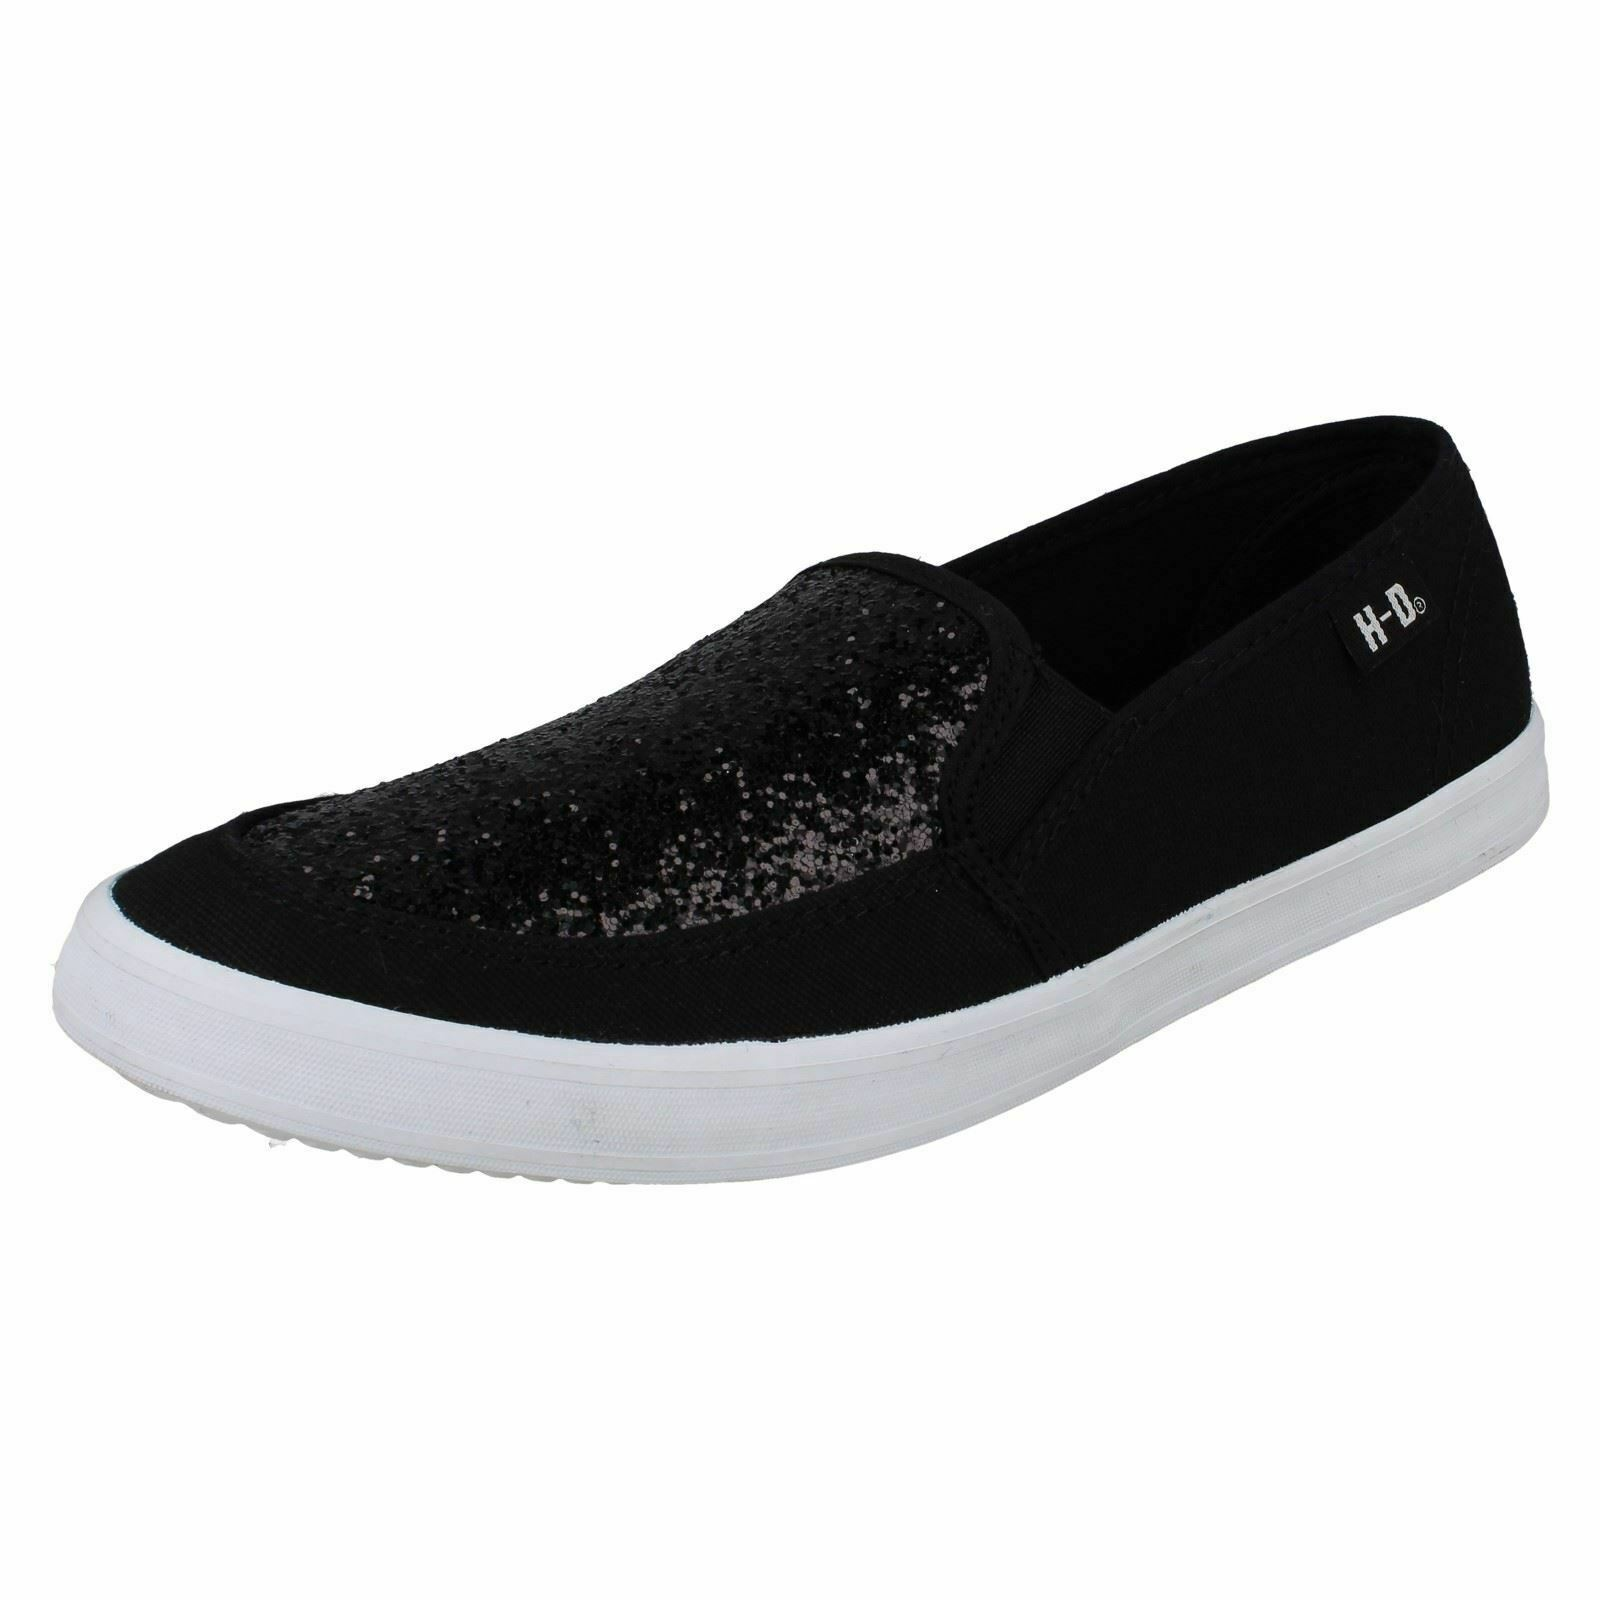 Ladies Harley Davidson Casual Slip On Pumps shoes Mading